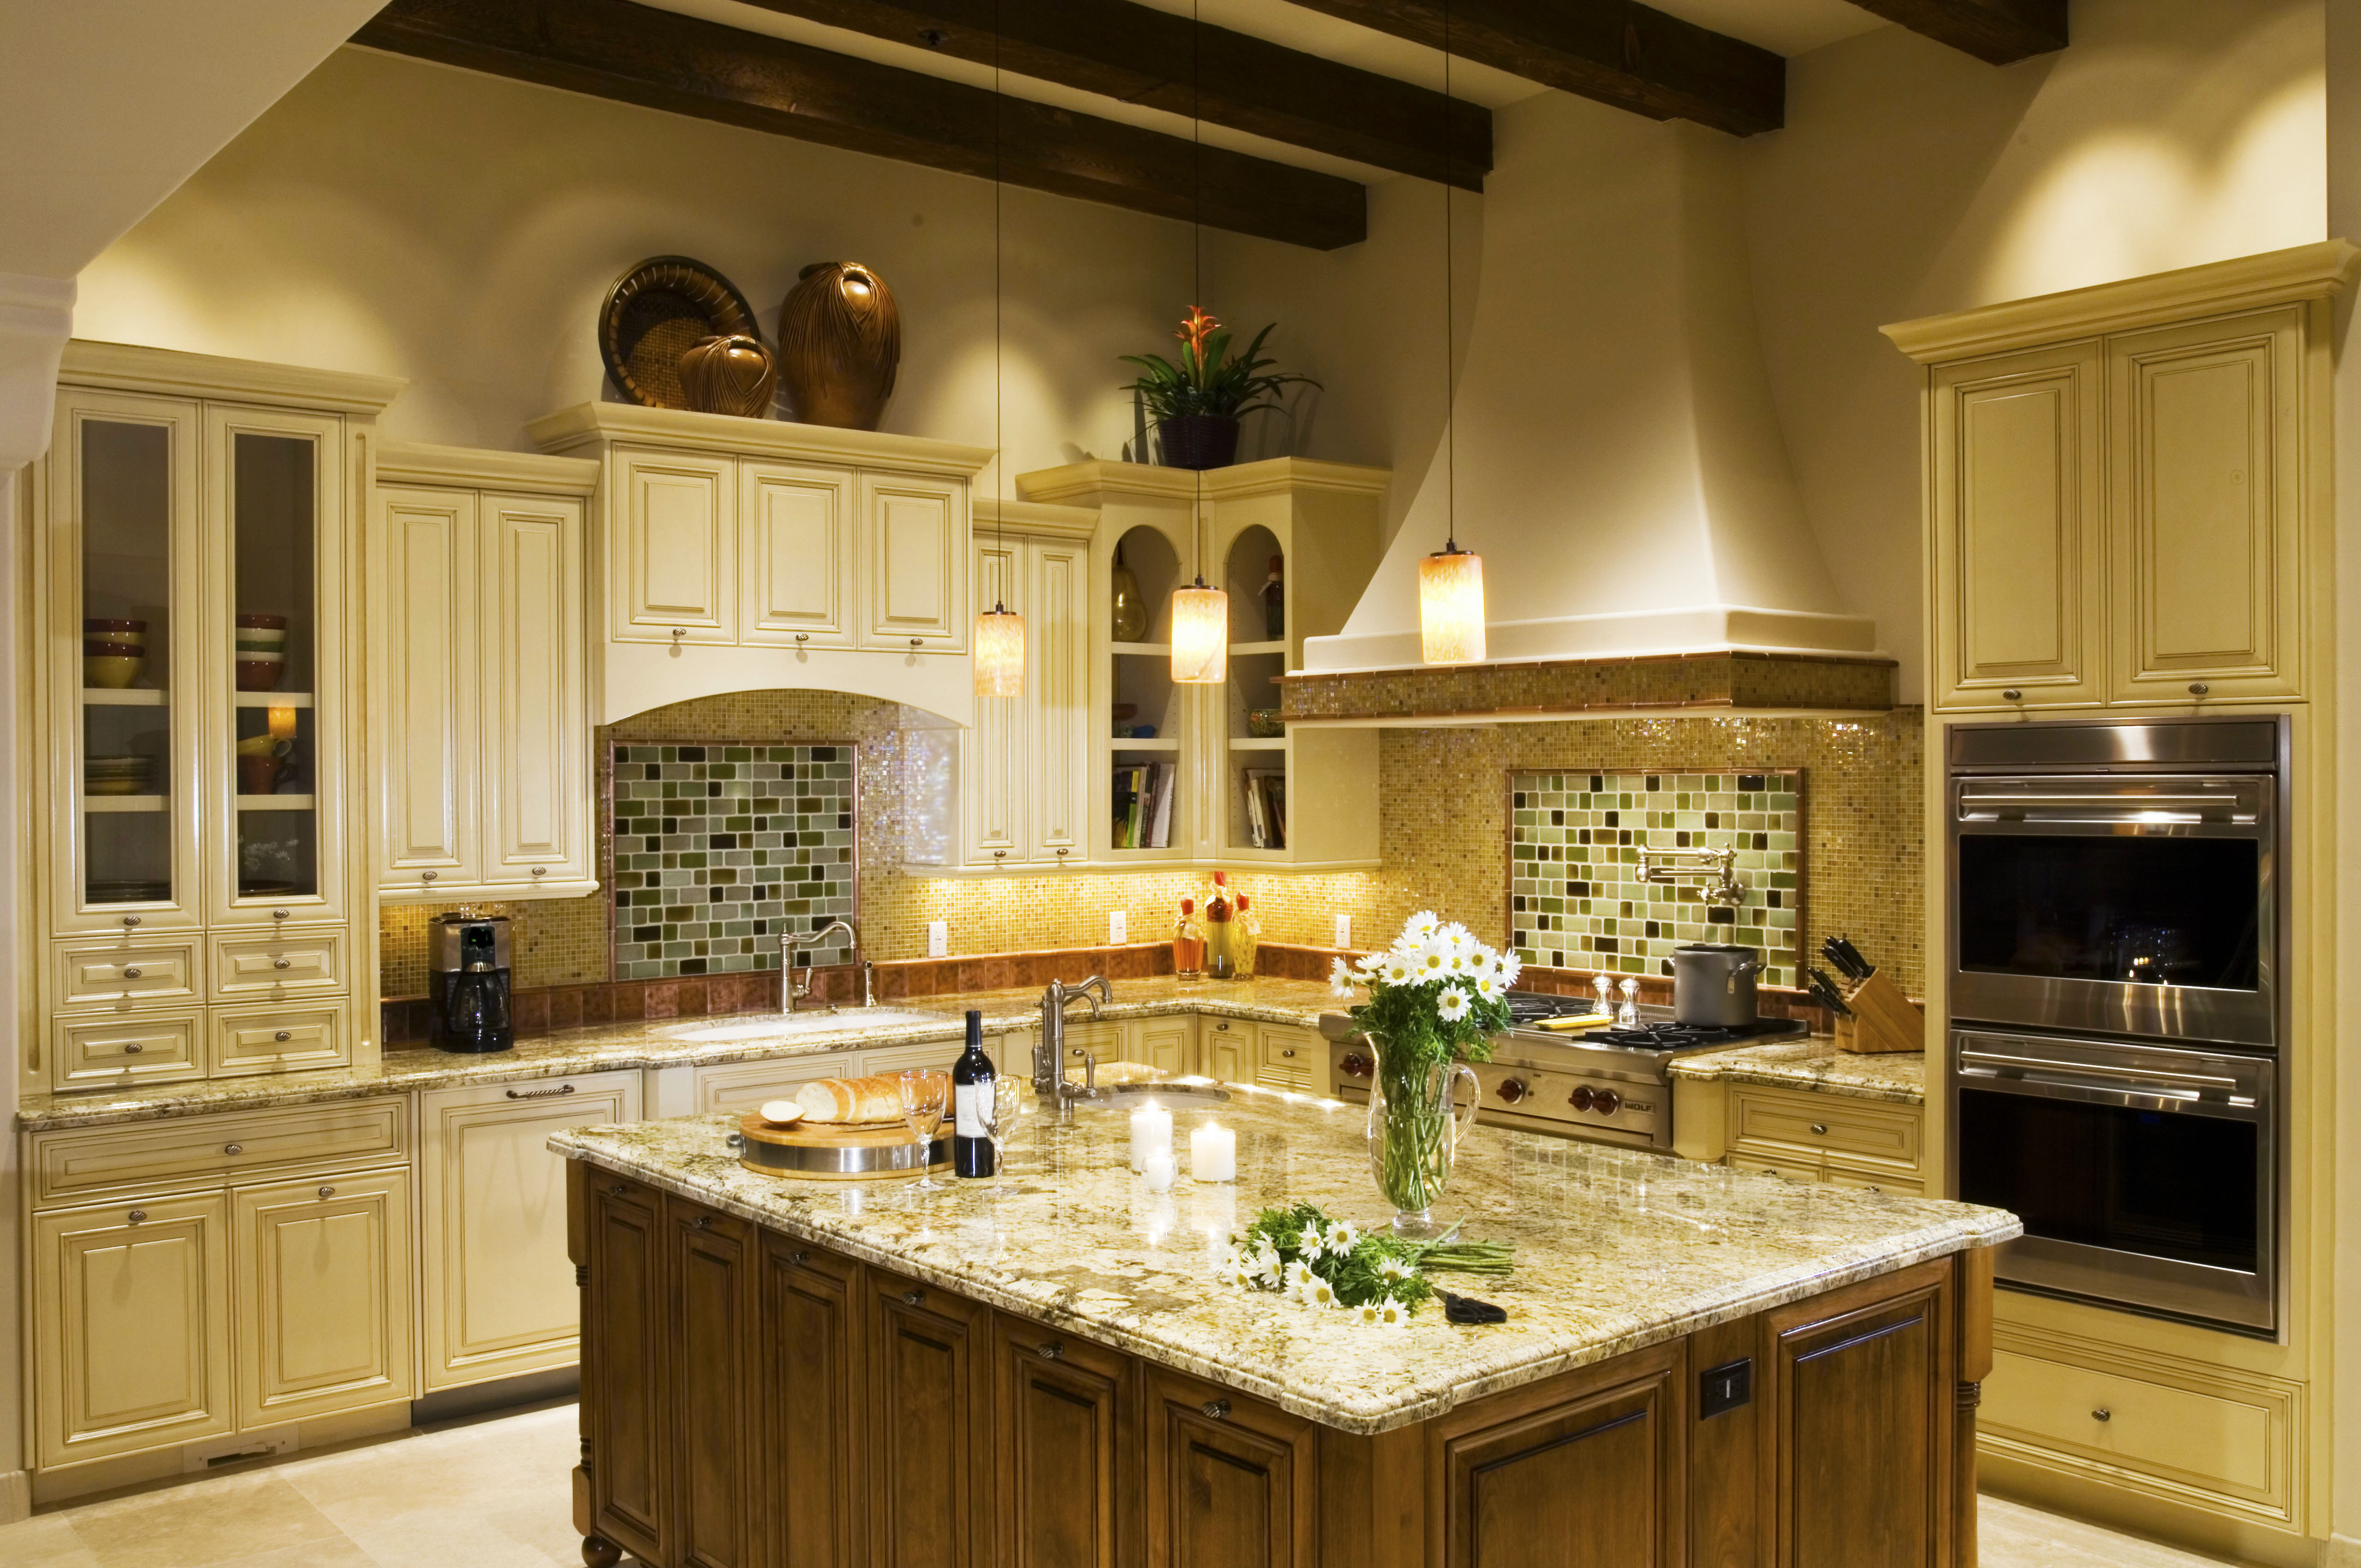 Cost to remodel kitchen backsplash designs roy home design How to redesign your kitchen